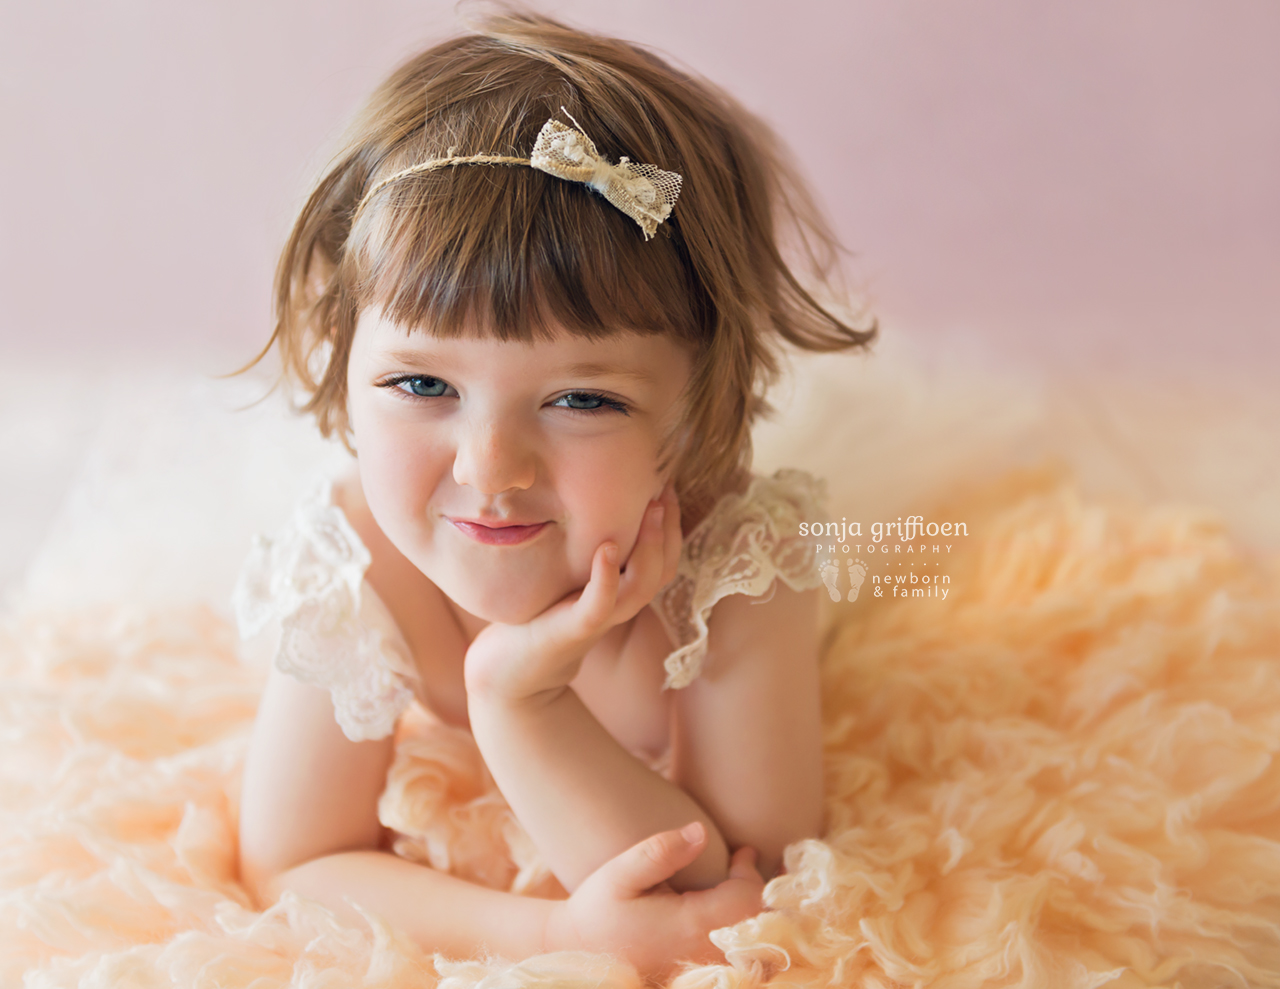 Bonnie-3-years-Brisbane-baby-child-photographer-Sonja-Griffioen-04.jpg